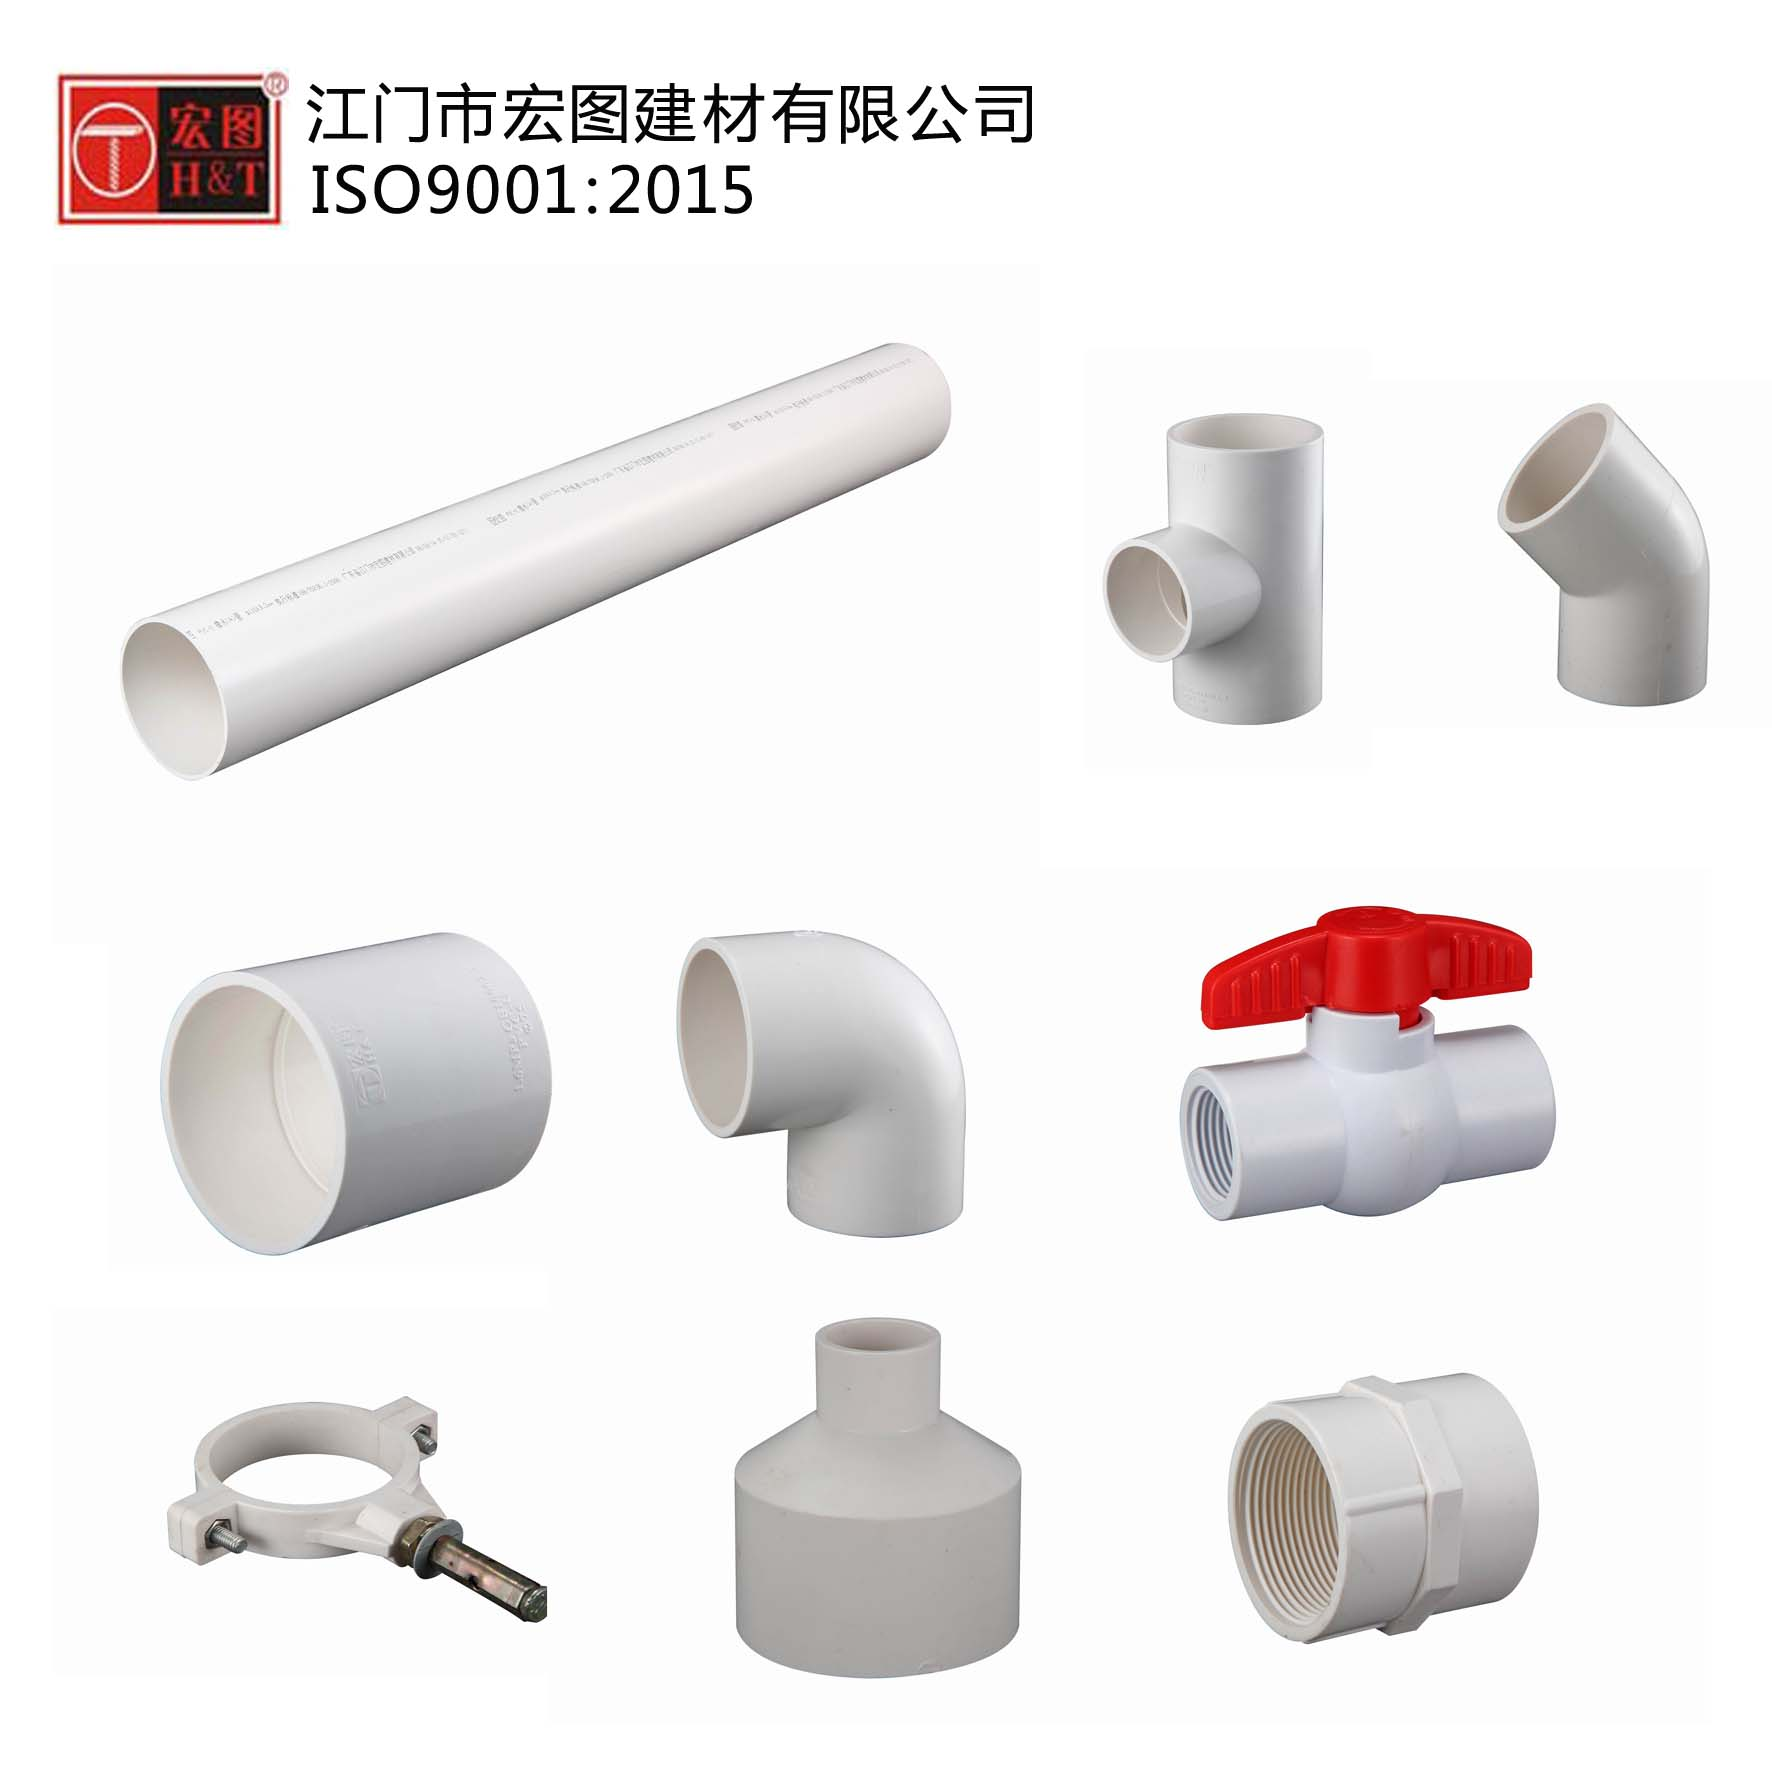 PVC-U WATER SUPPLY PIPE & FITTINGS